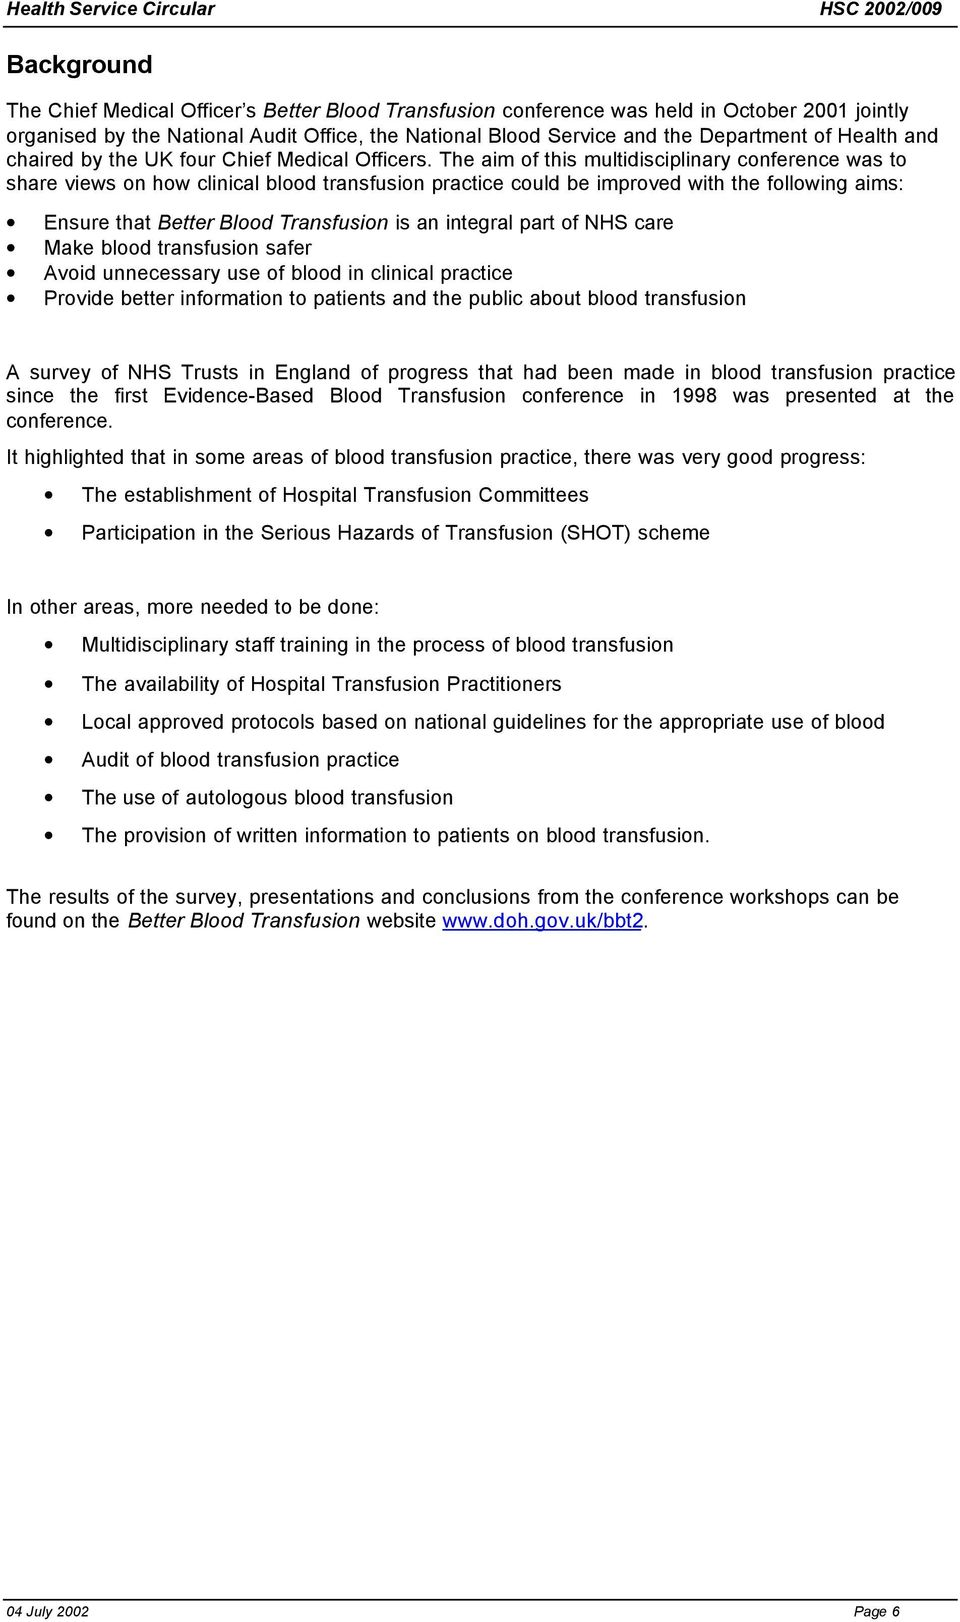 The aim of this multidisciplinary conference was to share views on how clinical blood transfusion practice could be improved with the following aims: Ensure that Better Blood Transfusion is an